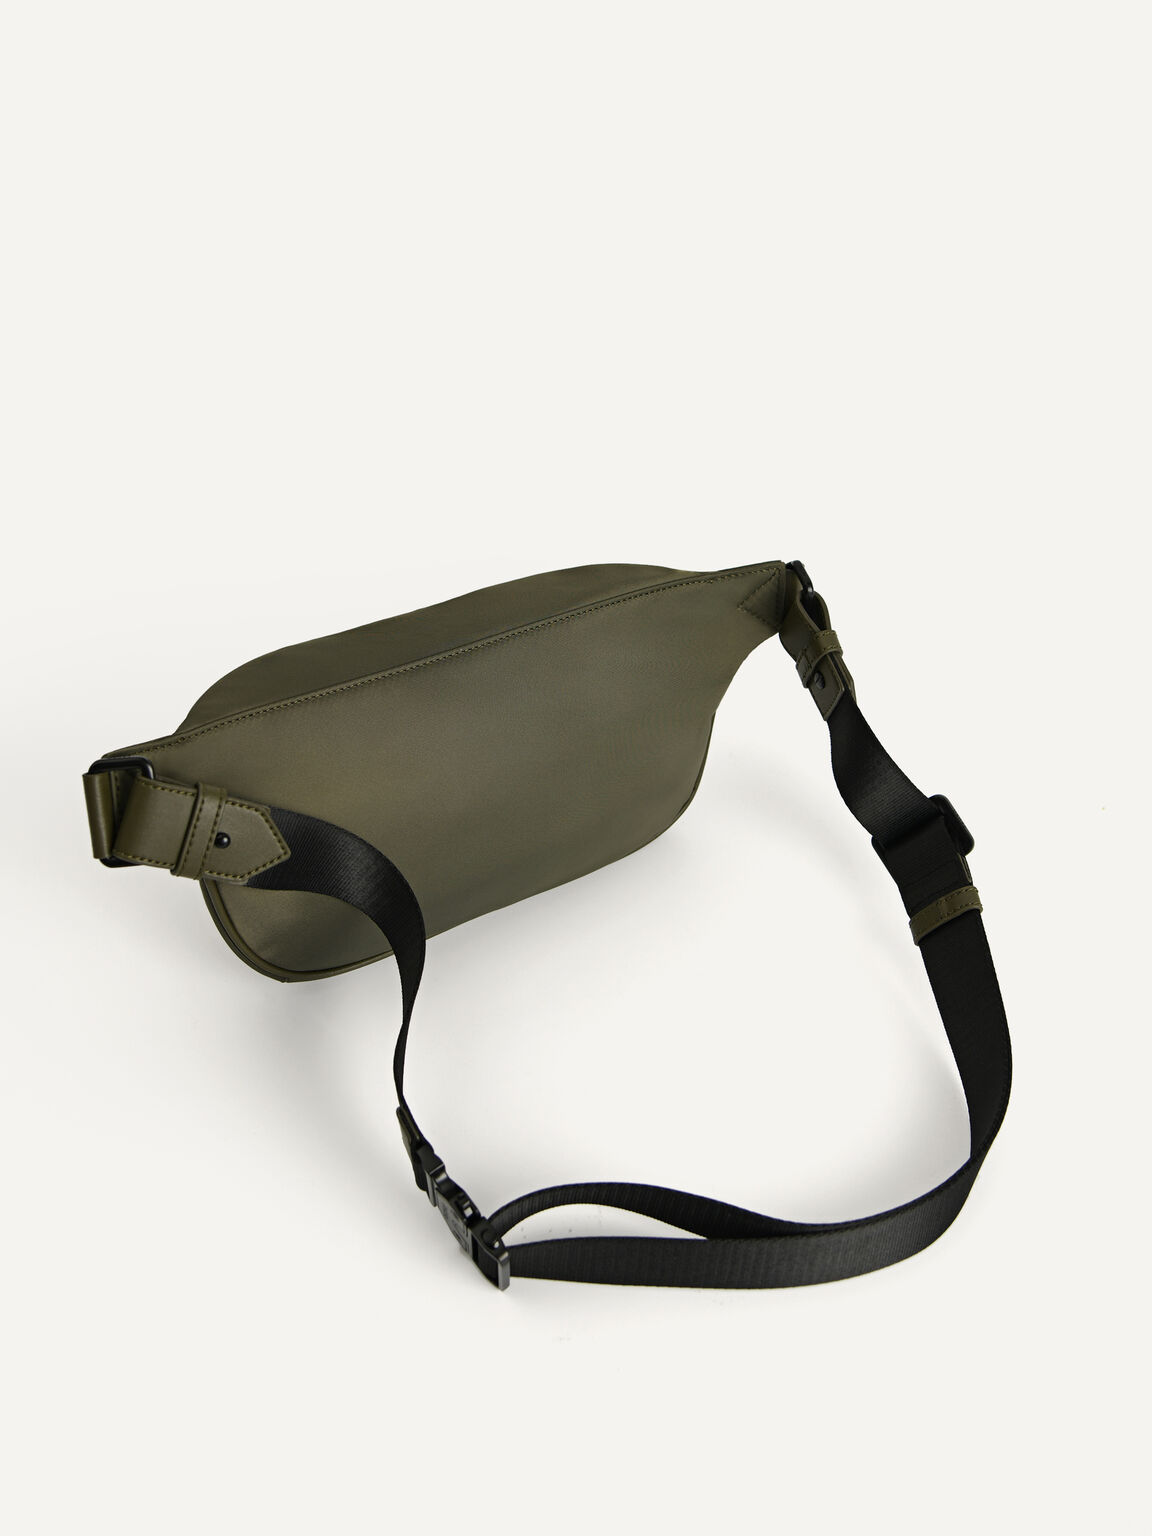 Casual Sling Pouch, Olive, hi-res